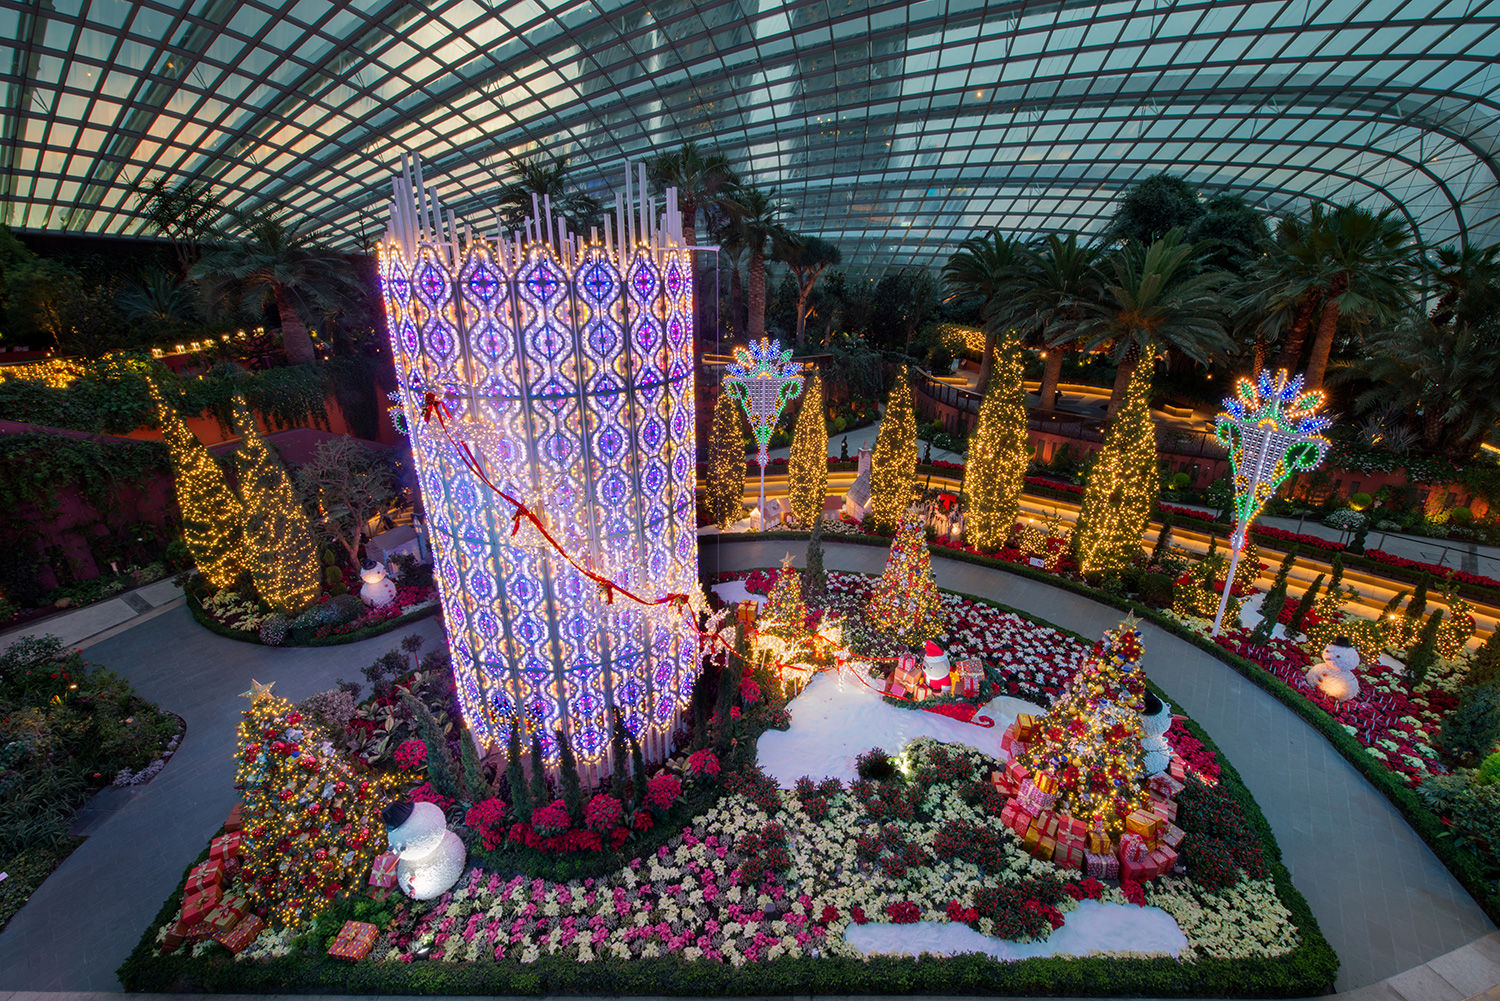 """Yuletide In The Flower Dome A Wintry Christmas At Gardens By The Bay Darren Bloggie Ɂ""""人的部落格 Singapore Lifestyle Blog"""